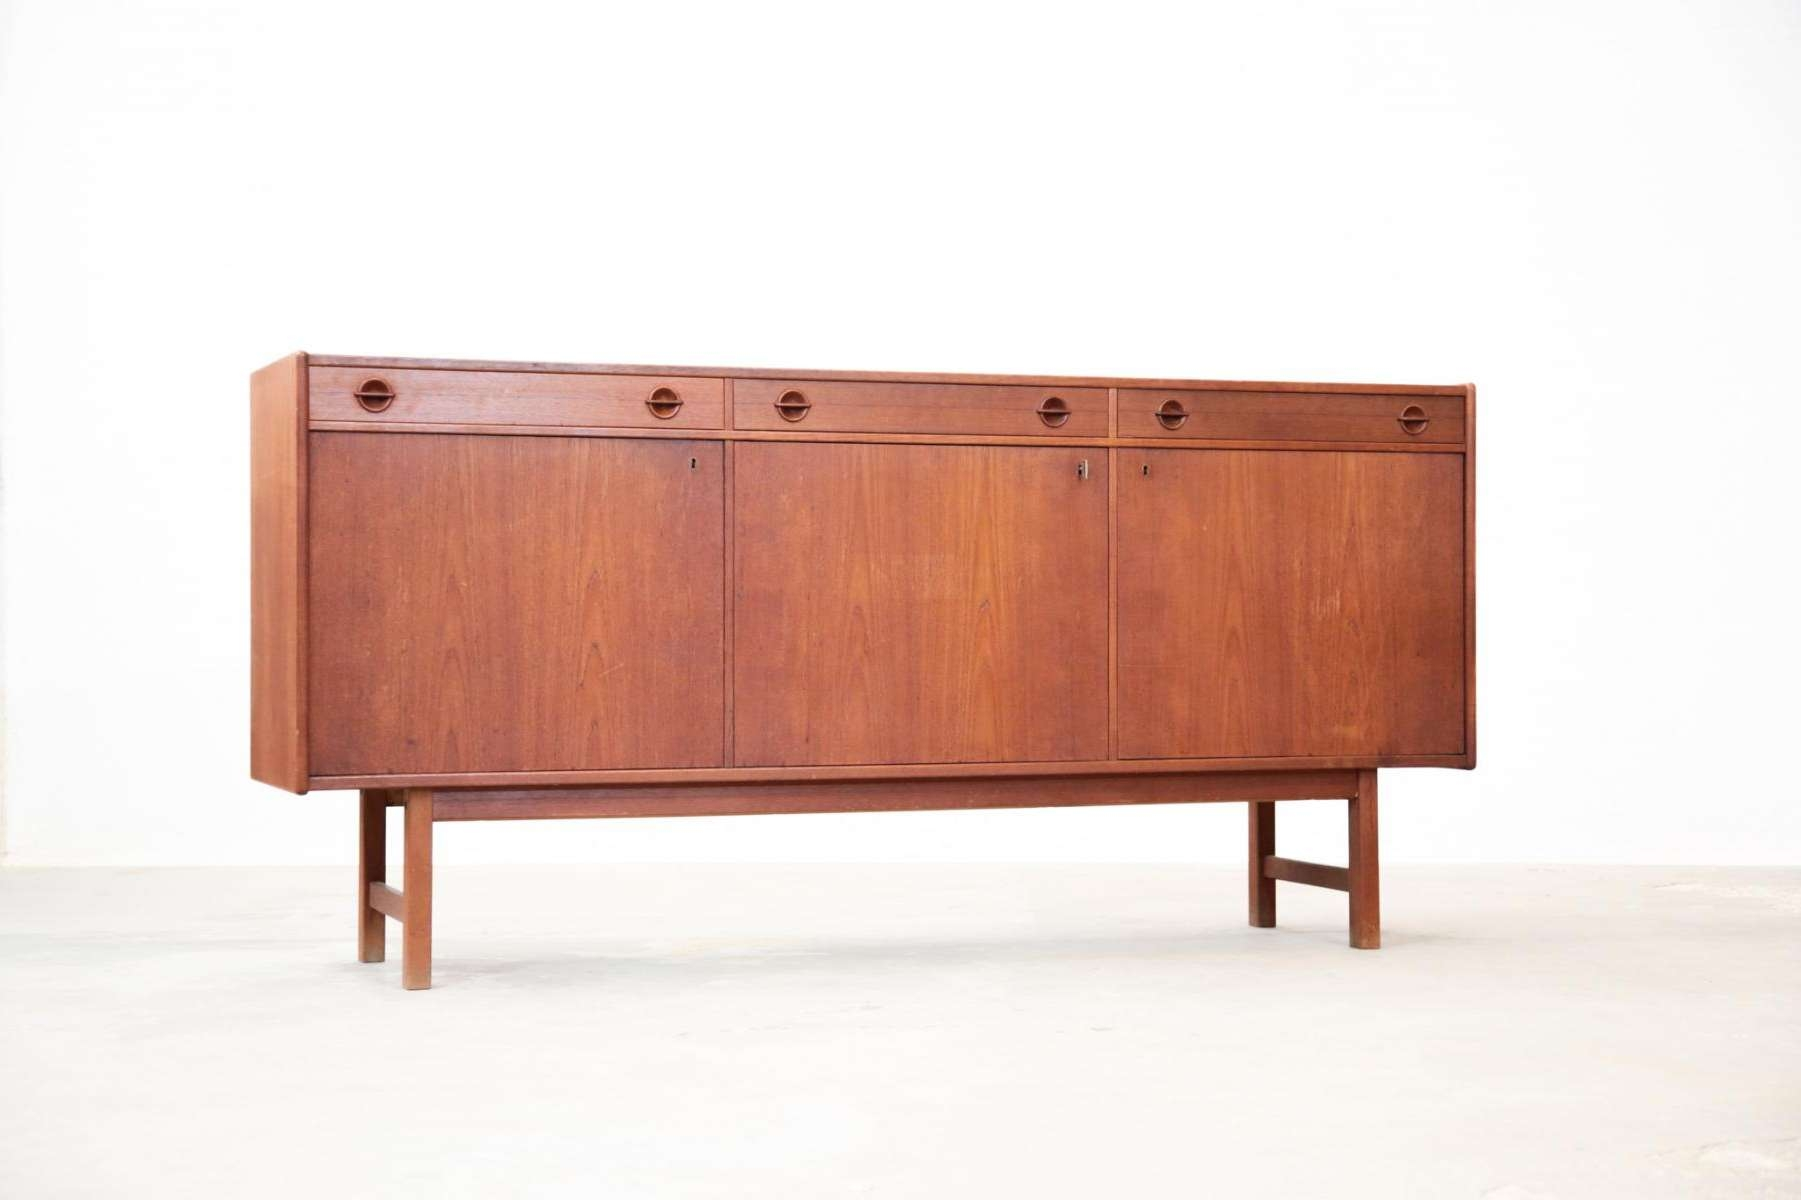 Danish Teak Sideboardtage Olofsson For Ulferts Möbler For Sale Within Teak Sideboards (View 4 of 20)